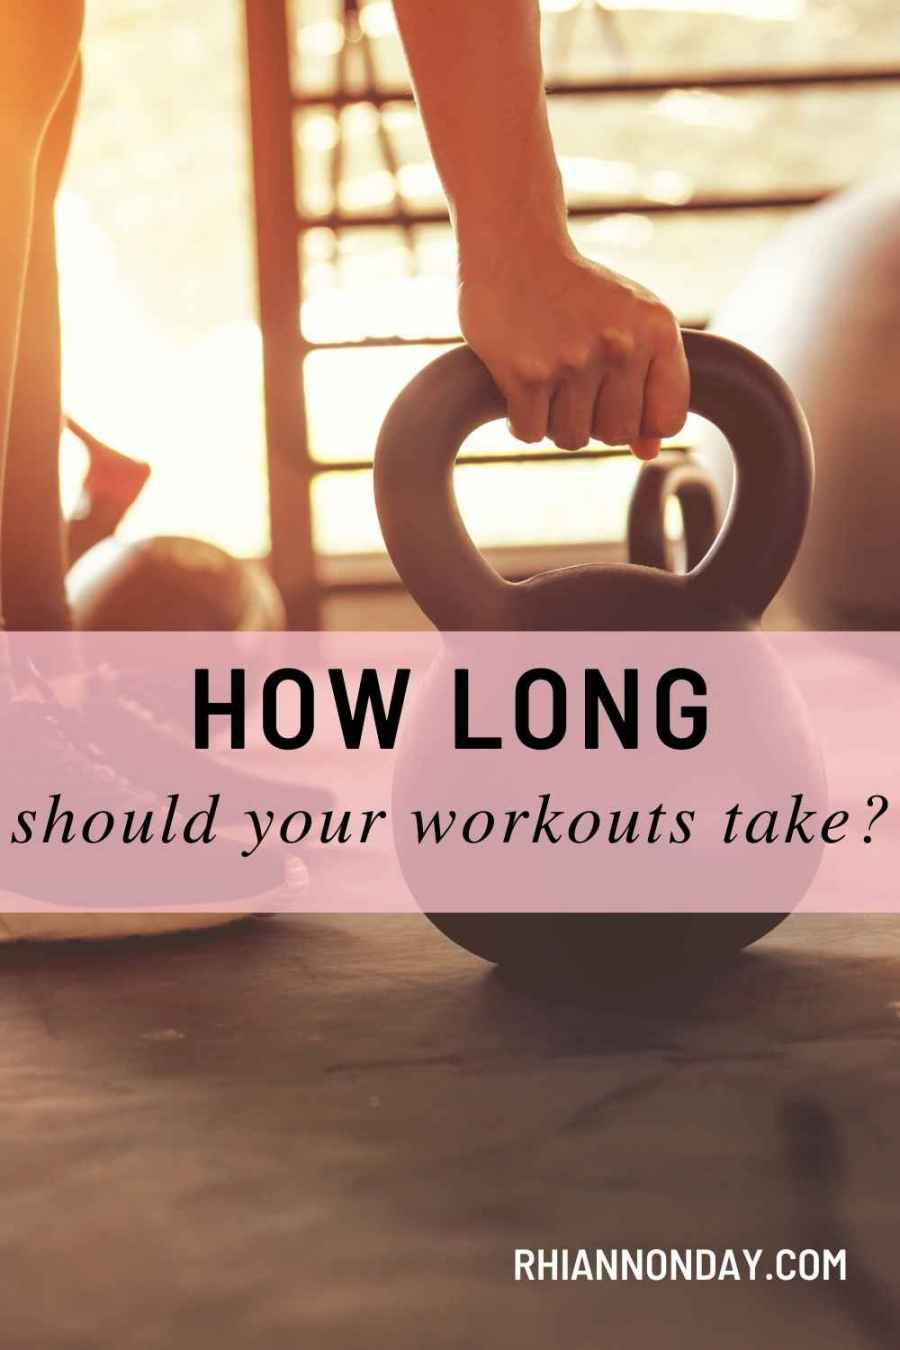 Yay, you made it to the gym! Now how long do you need to stay there?  Here's how long your workouts should be taking you.